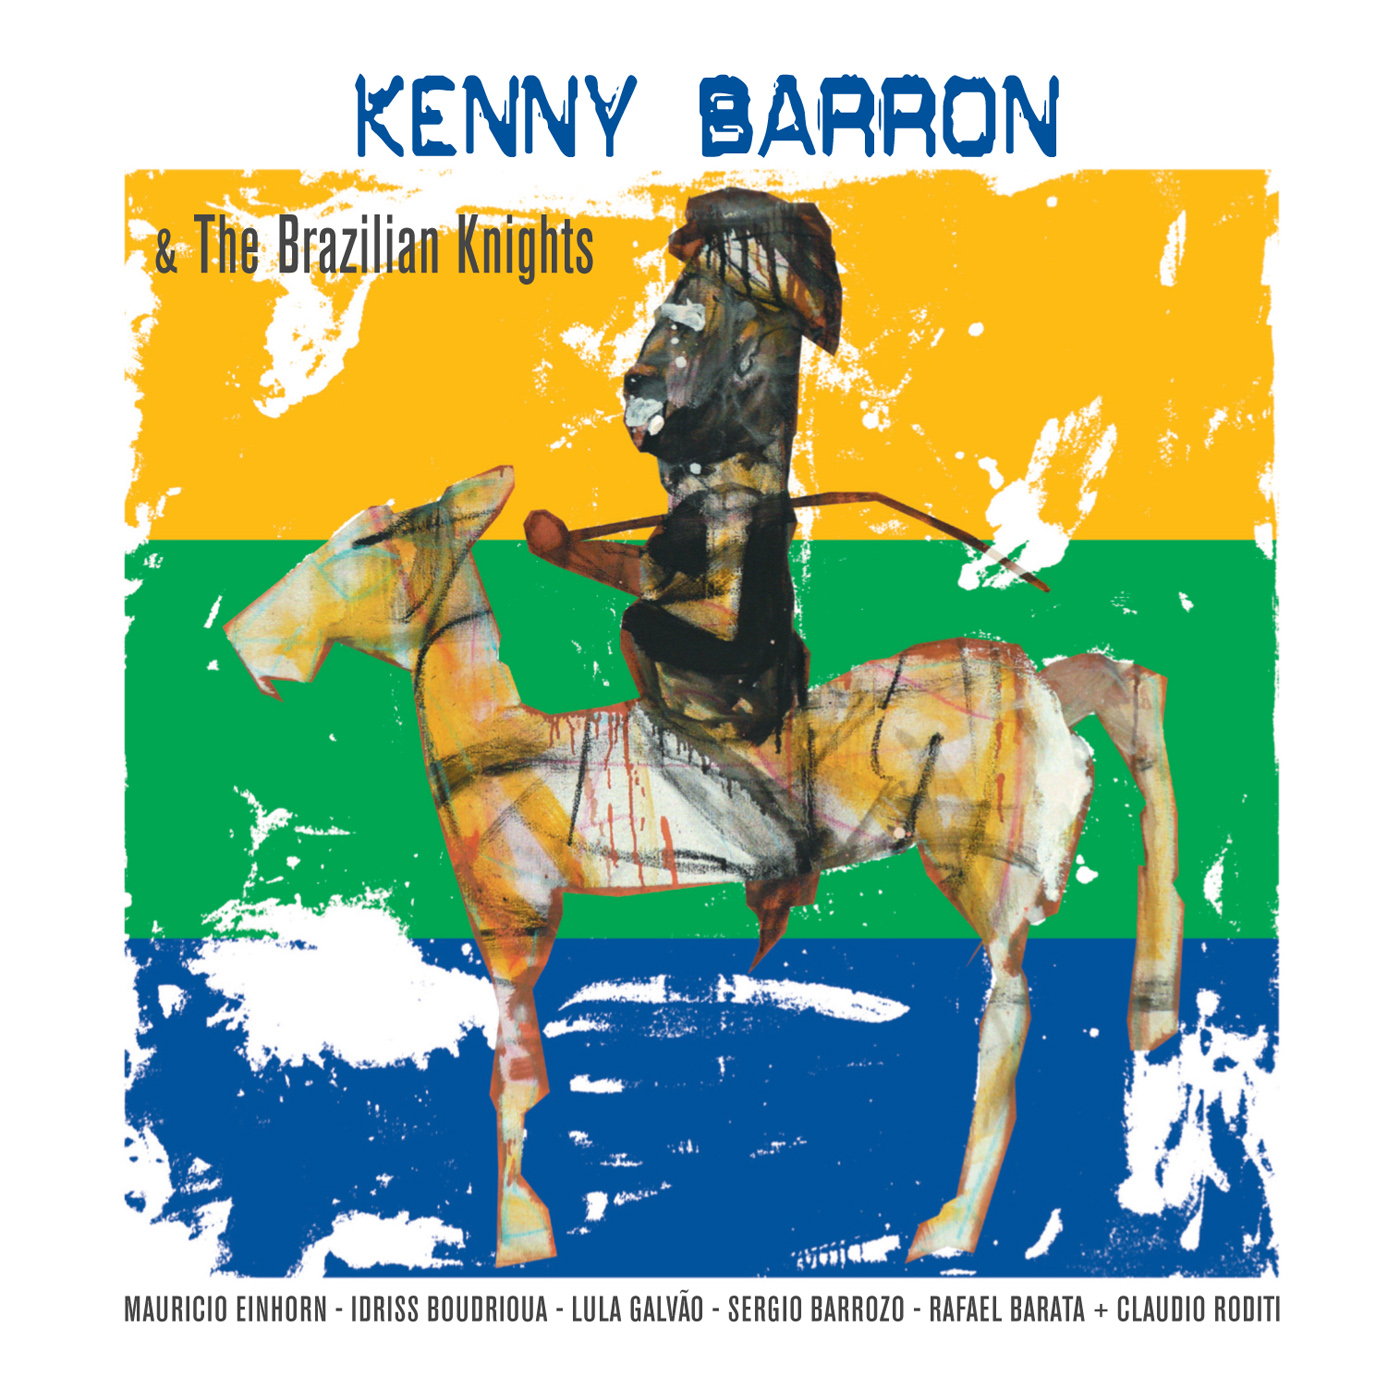 Kenny Barron & the Brazilian Knights by Kenny Barron cover